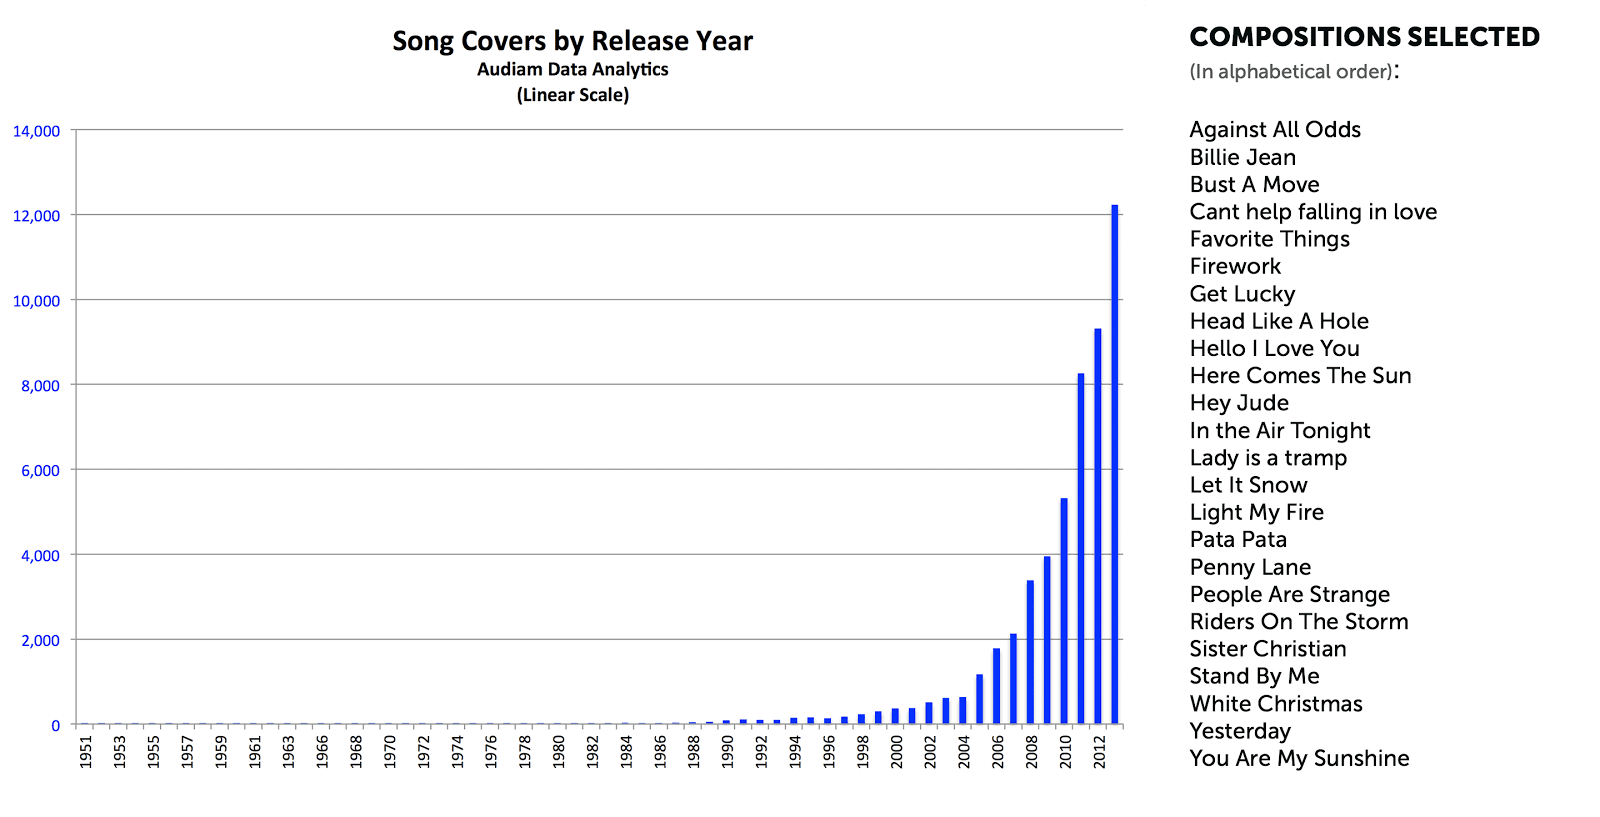 Artistcore the 2014 interactive streaming data as more money is for consumers every song in the world is now available to put in their own youtube videos or listen to on demand anytime anywhere and in many cases for malvernweather Choice Image